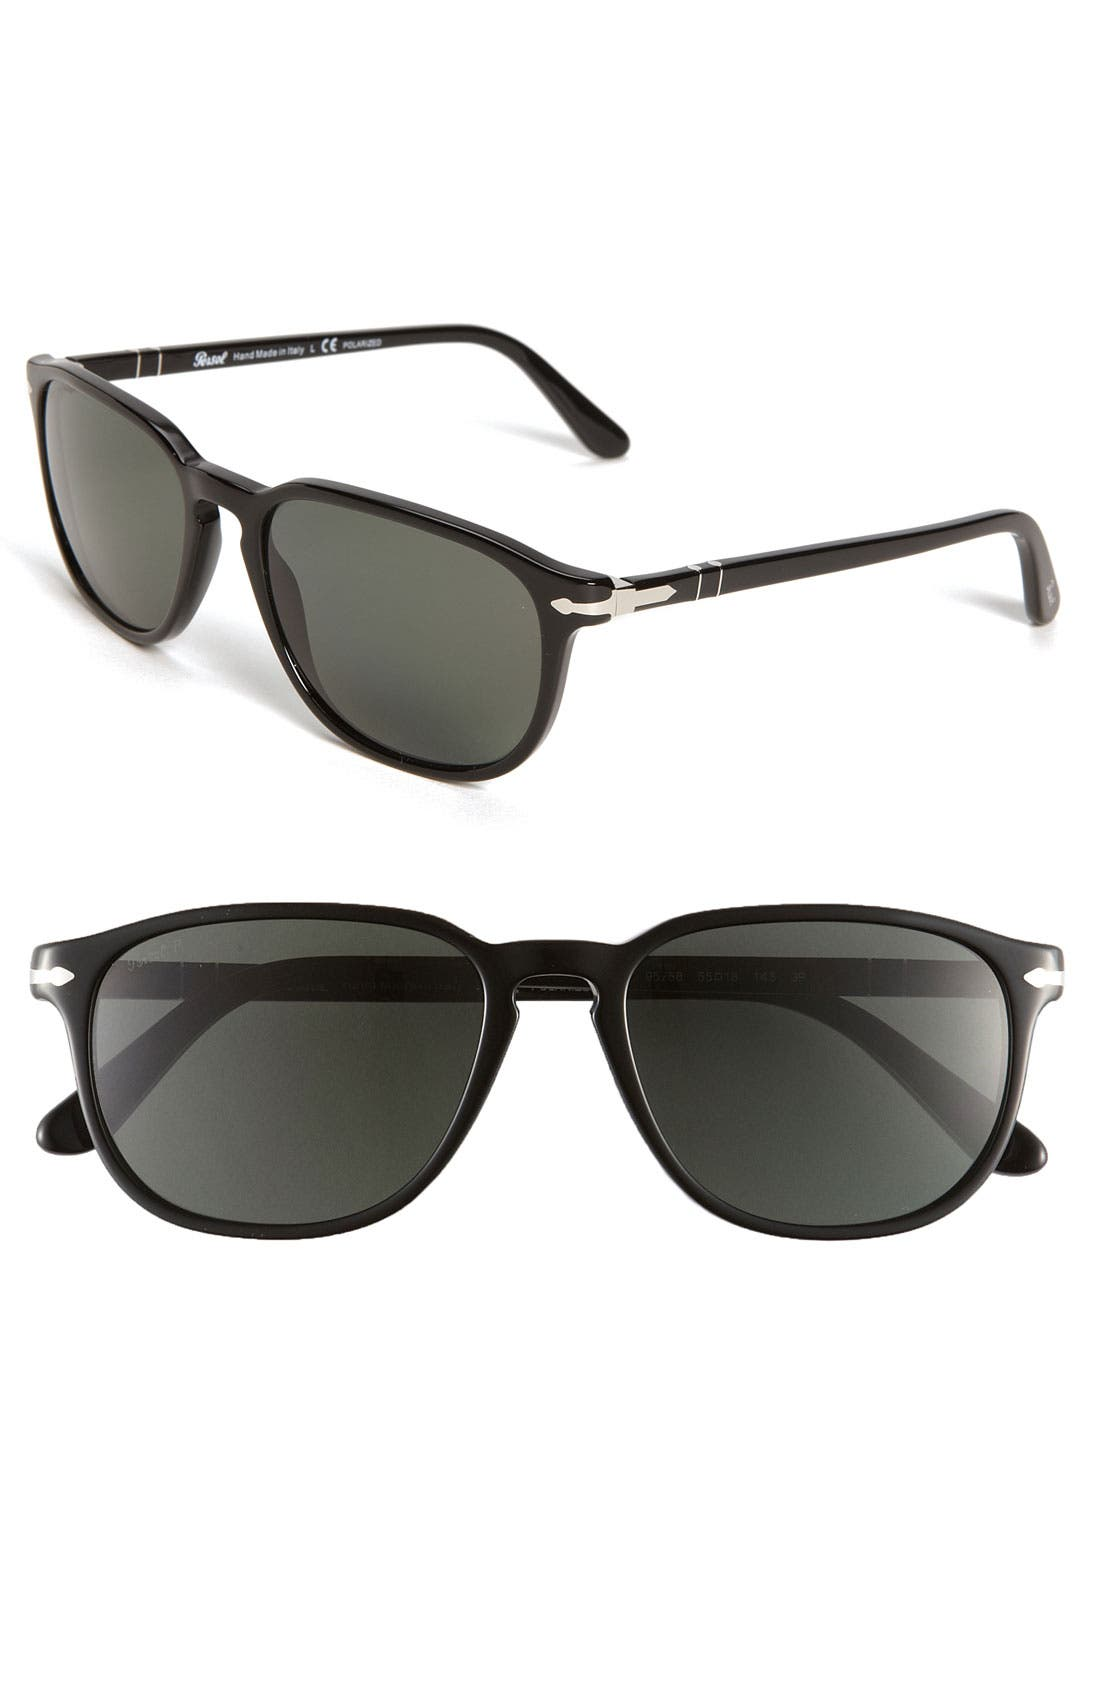 Main Image - Persol Polarized 55m Keyhole Sunglasses